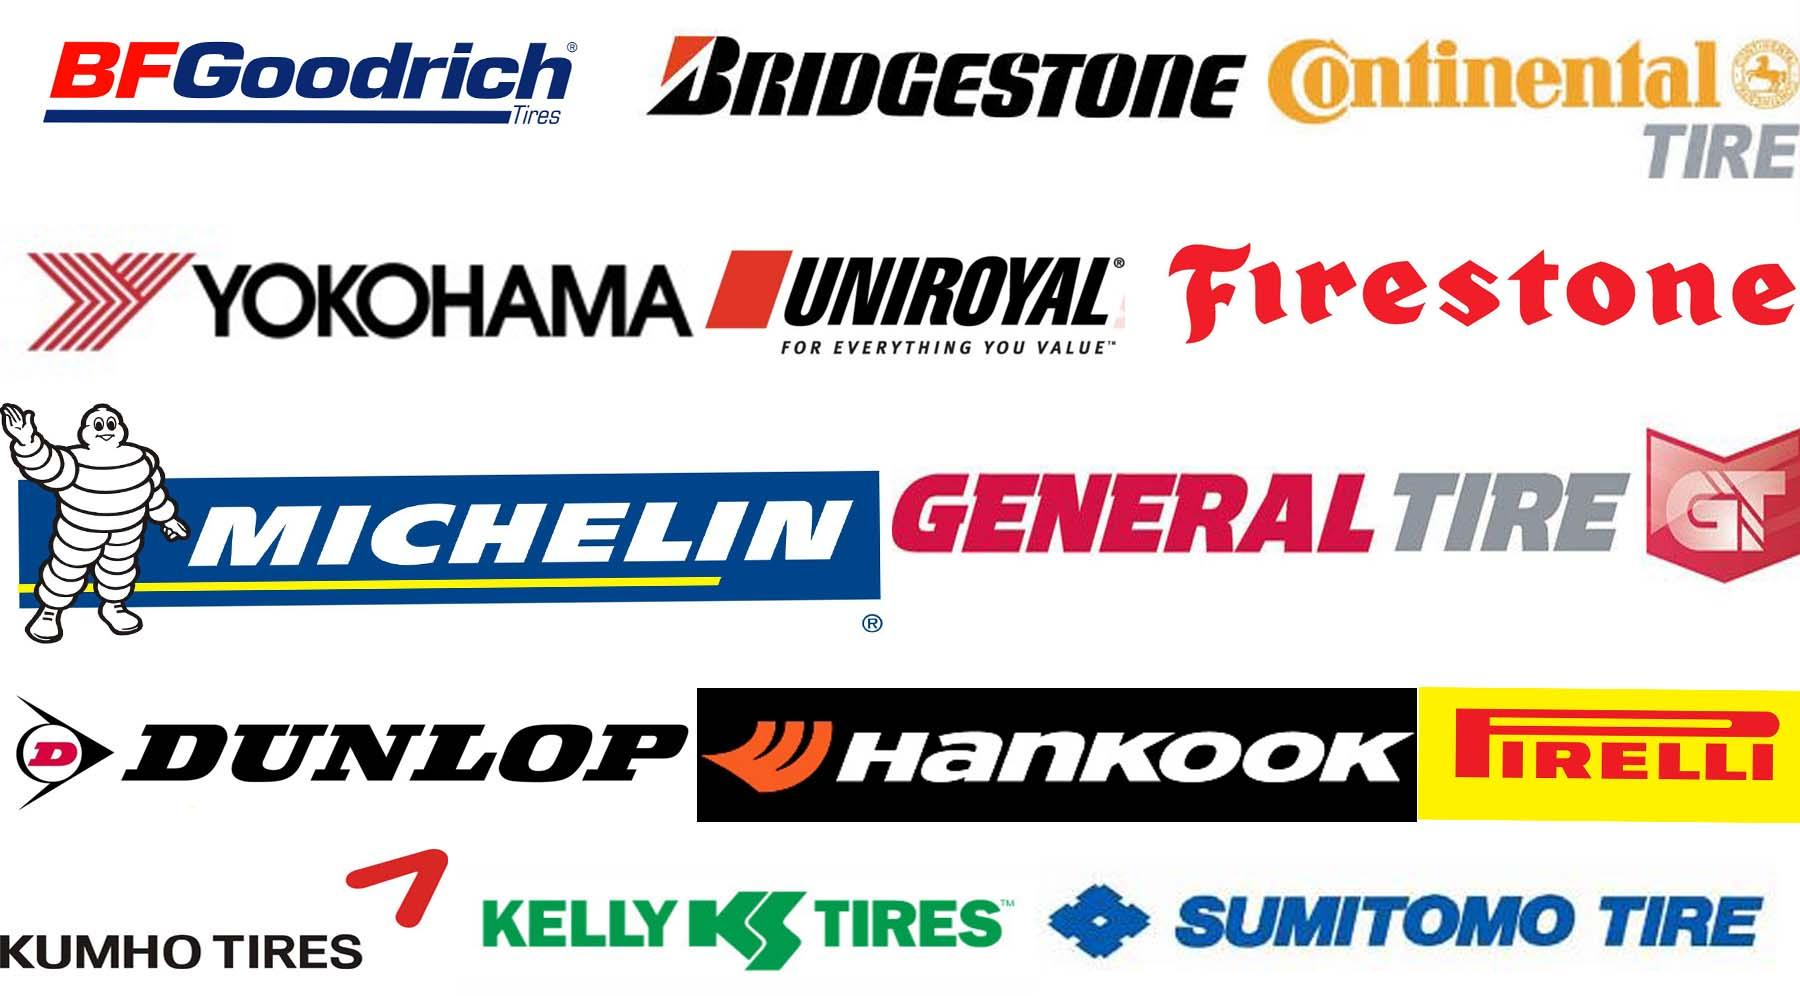 Guaranteed Lowest Price on Tires. Looking for new products from Michelin ®, BFGoodrich ®, Uniroyal ®, Bridgestone, Firestone, Yokohama, or other major brands?You're only a click away! We offer only the best tires for your passenger car, light truck, or SUV.